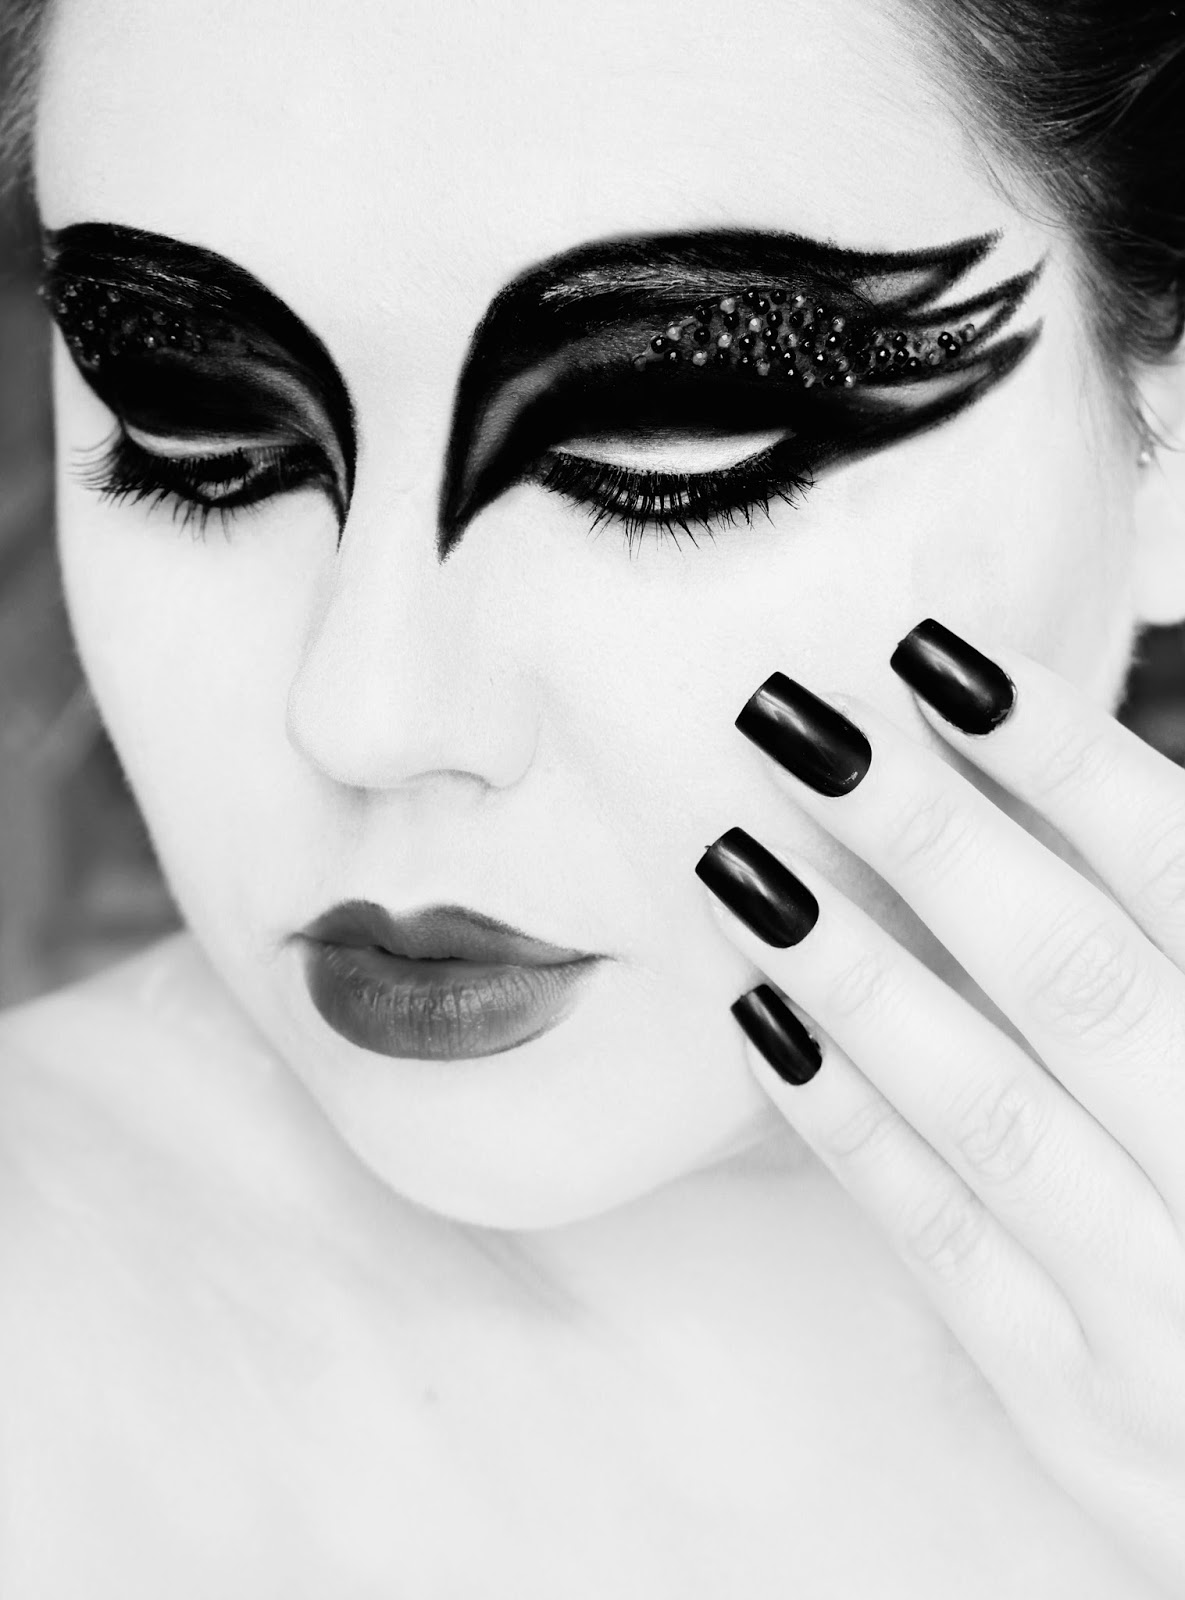 ... beauty, fashion and lifestyle blog: Black Swan Halloween Makeup Look